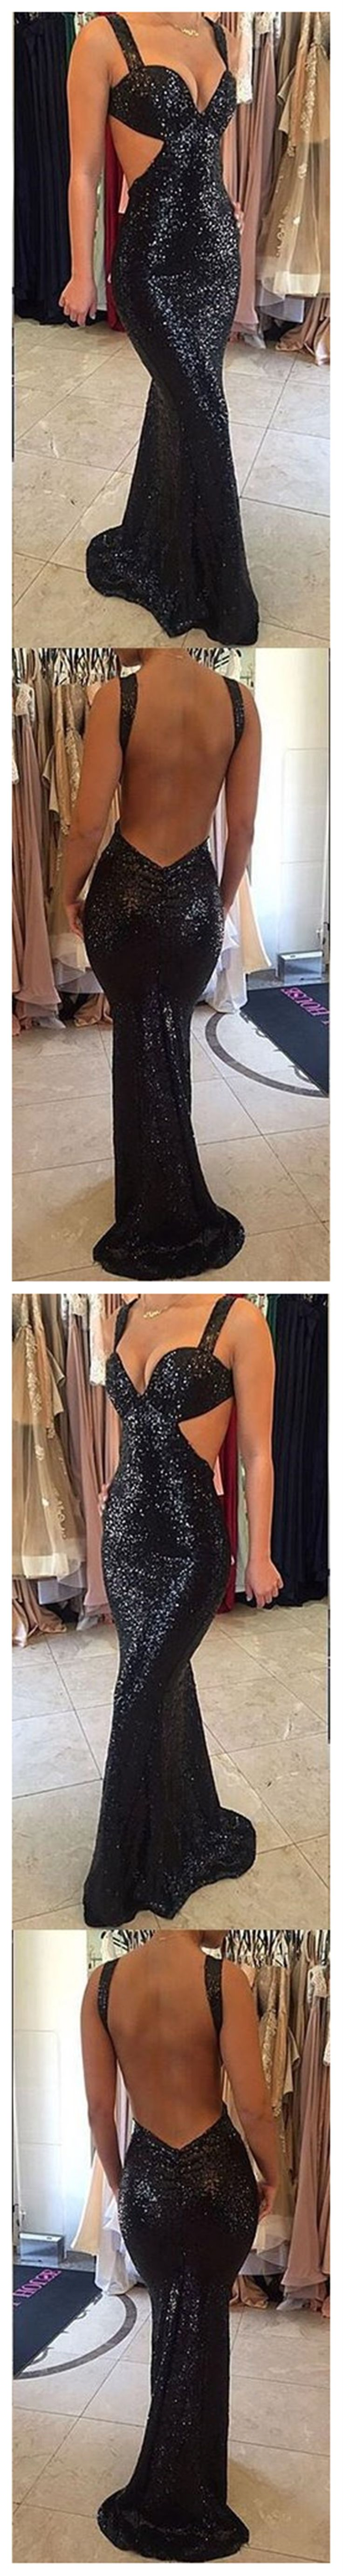 Black Sequined Prom Dresses,Sparkle Prom Dresses,Sexy Prom Dresses, Backless Prom Dresses,Party Dresses ,Cocktail Prom Dresses ,Evening Dresses,Long Prom Dress,Prom Dresses Online,PD0200